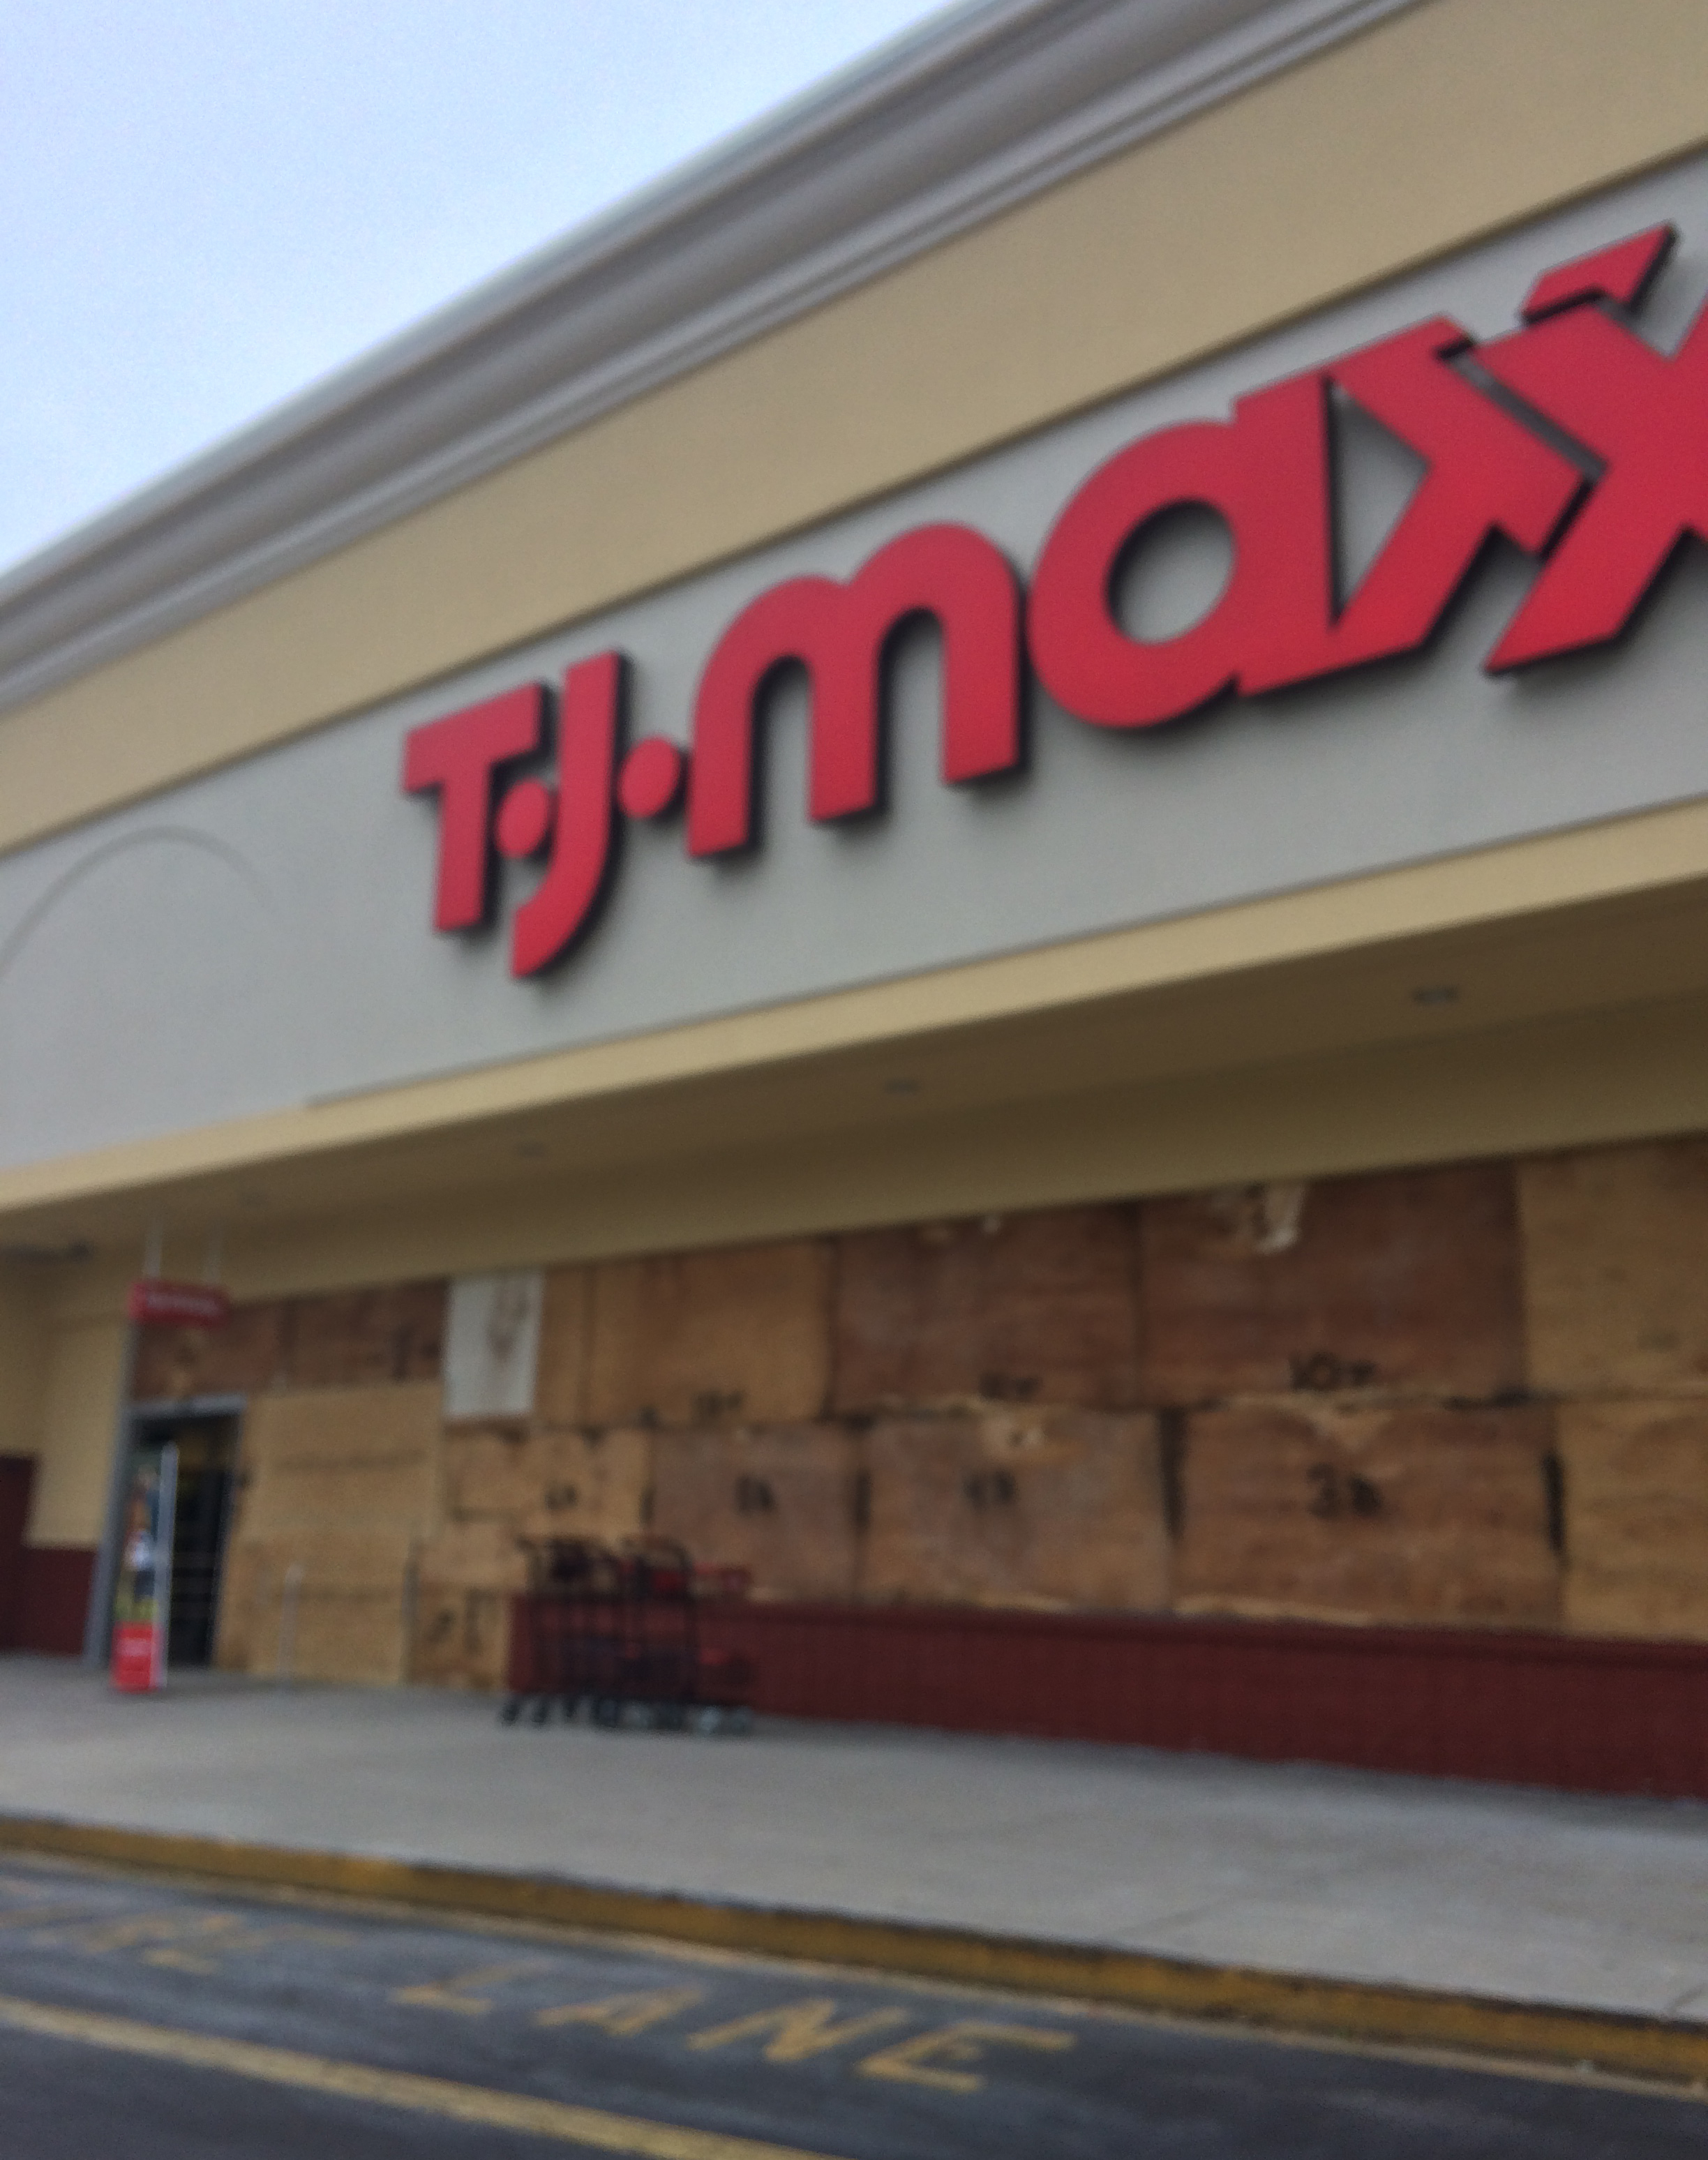 I took this photo of a TJ Maxx this morning as I was coming back from the gym. The store boarded up its windows in preparation for the storm.